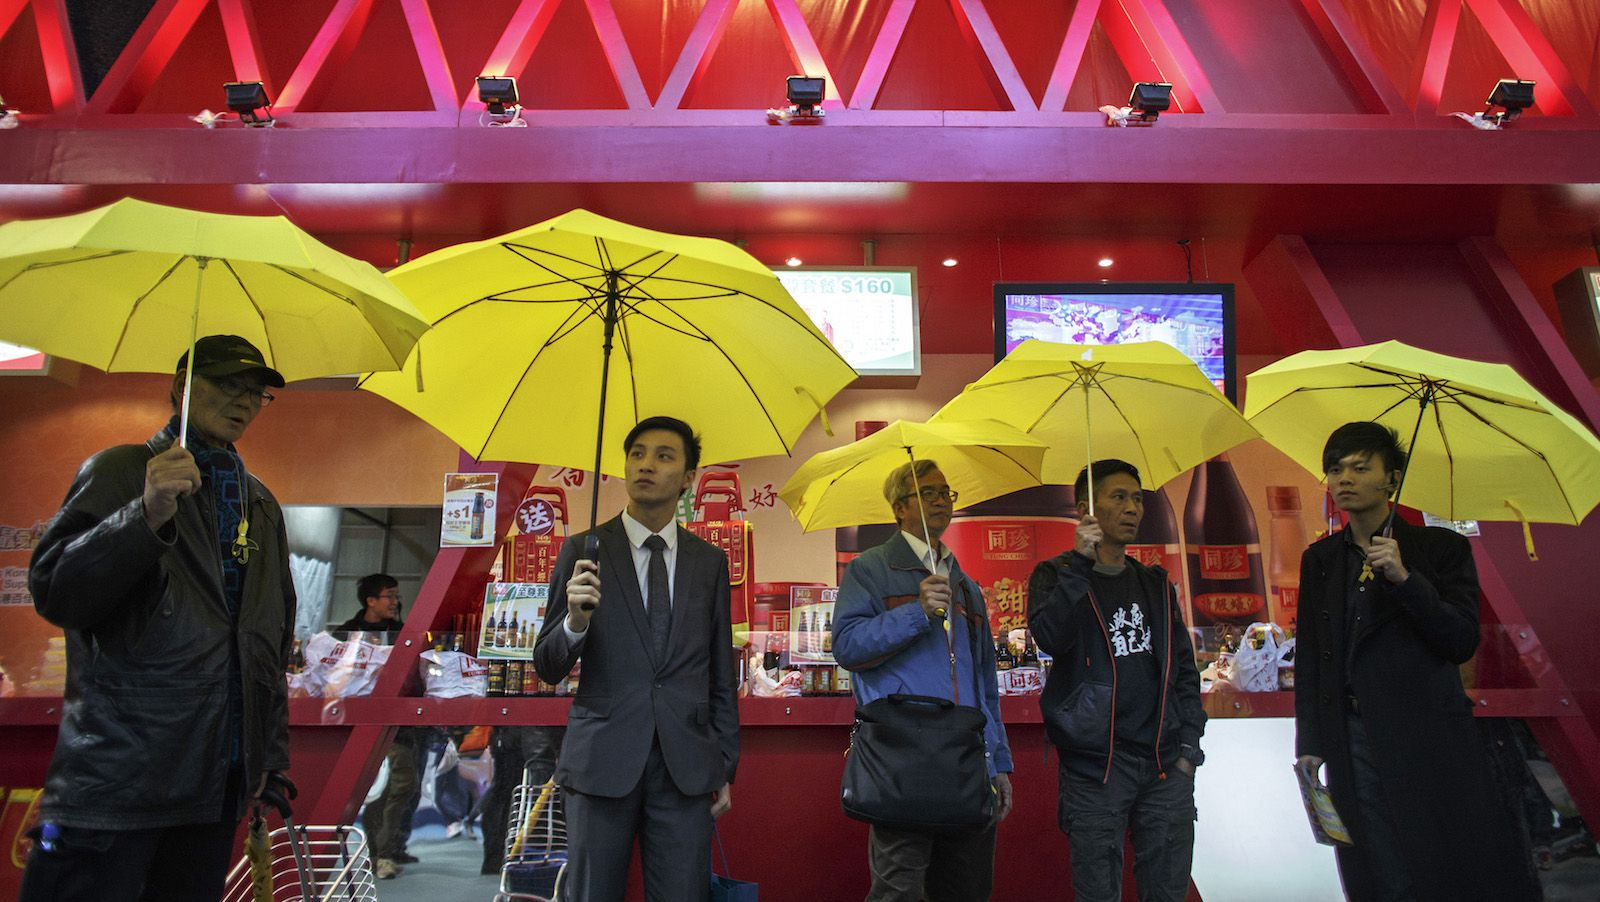 Pro-democracy protesters hold up yellow umbrellas, a symbol of the Occupy Central civil disobedience movement, at Victoria Park near Causeway Bay shopping district in Hong Kong December 13, 2014. REUTERS/Athit Perawongmetha (CHINA - Tags: POLITICS CIVIL UNREST) - RTR4HVDM